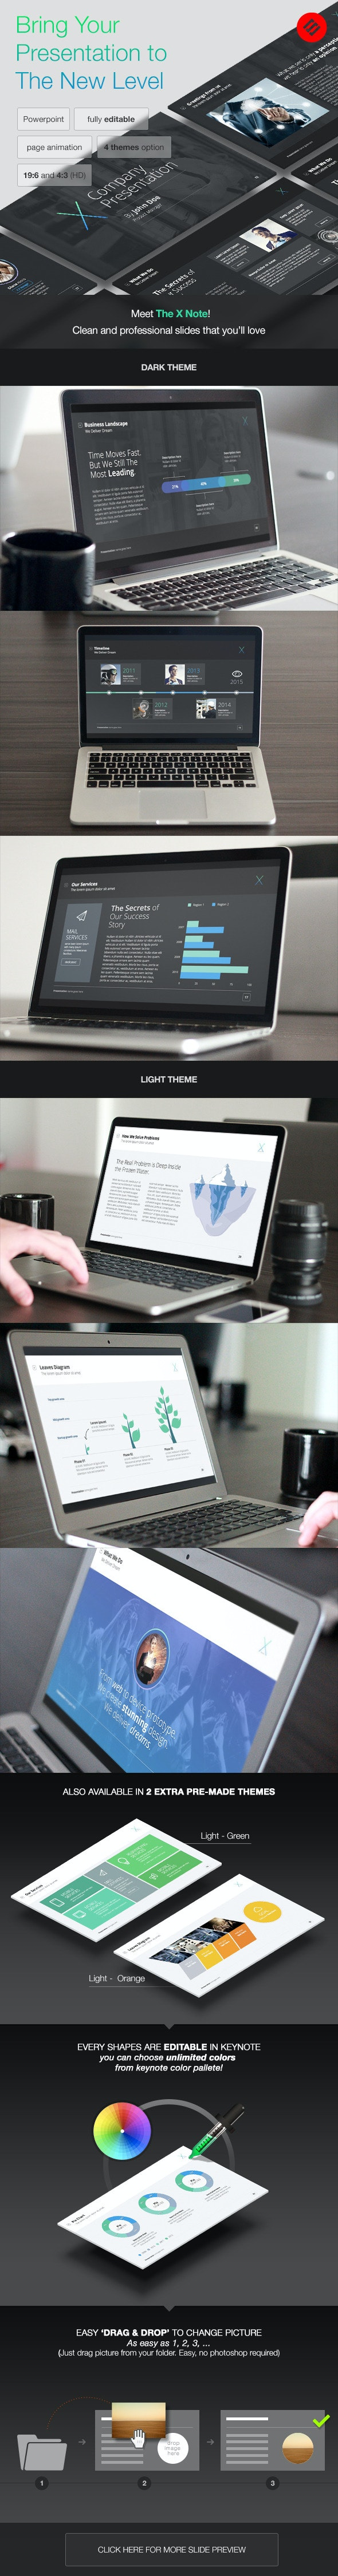 The X-note Powerpoint Template - PowerPoint Templates Presentation Templates